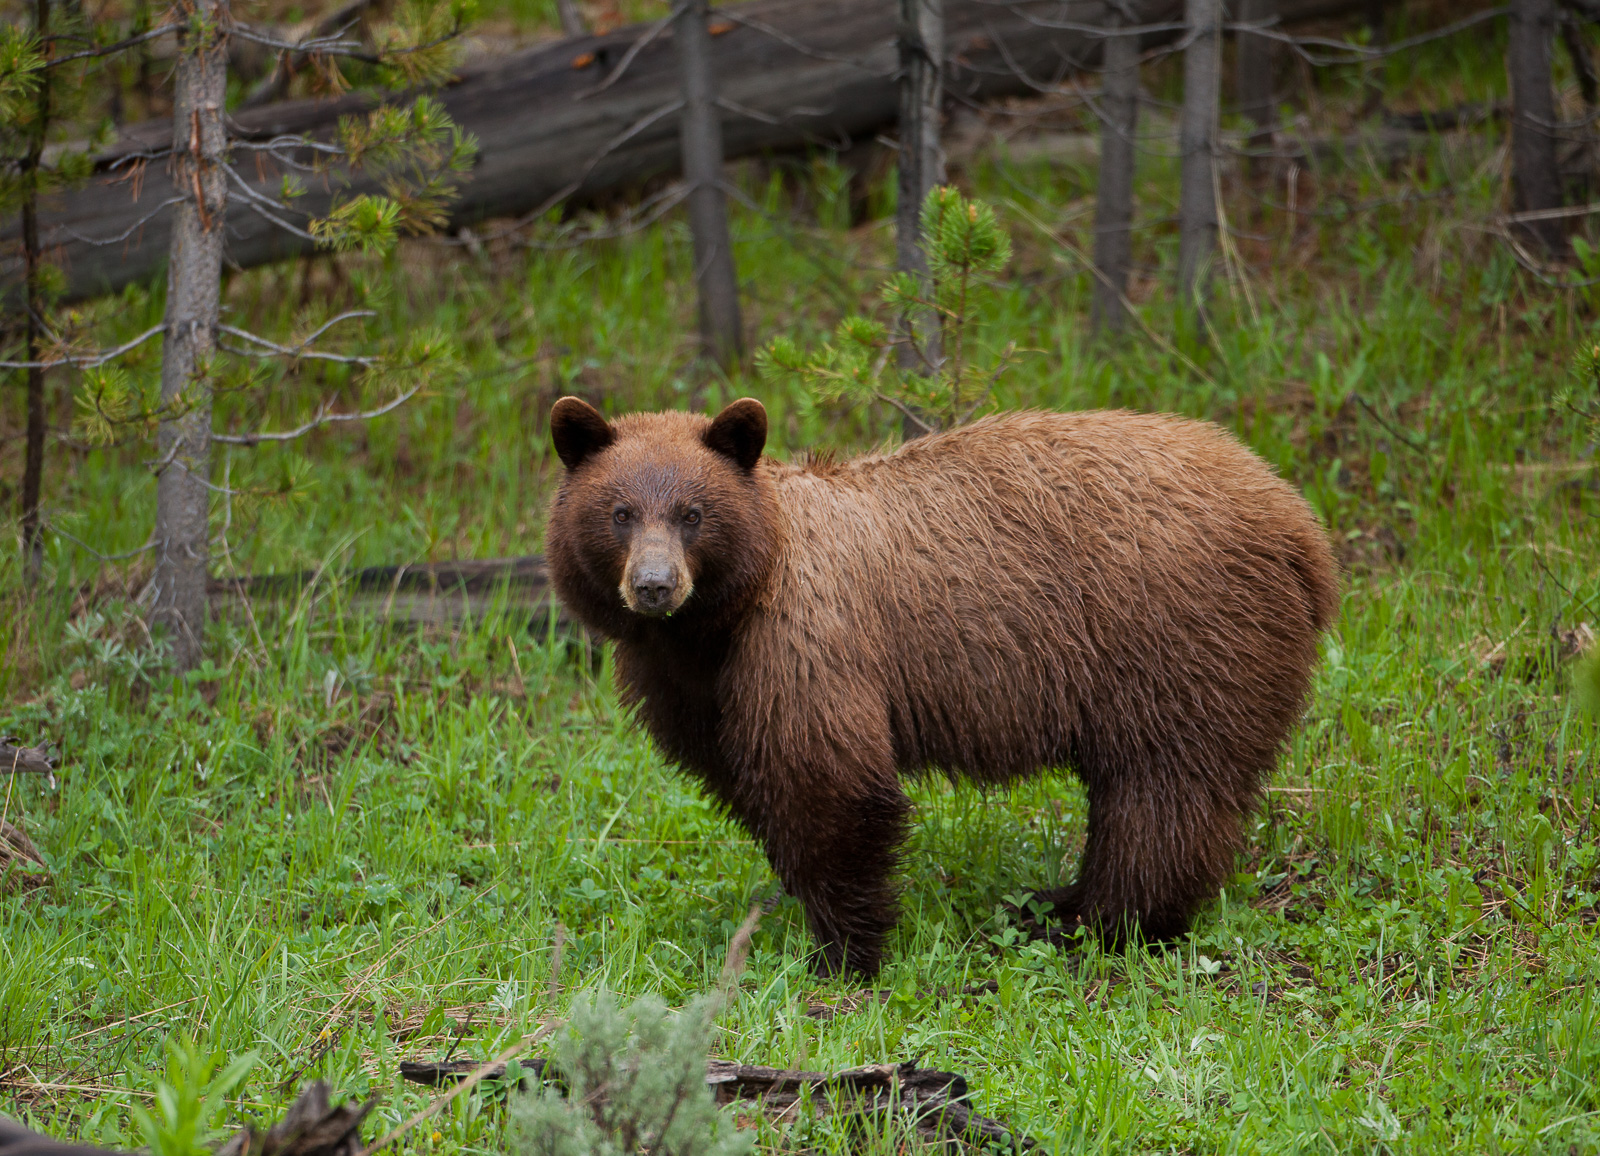 Looking at You,Brown bear,Grizzly Bear,Horizontal,Wyoming,Yellowstone National Park,wildlife, bear, photo